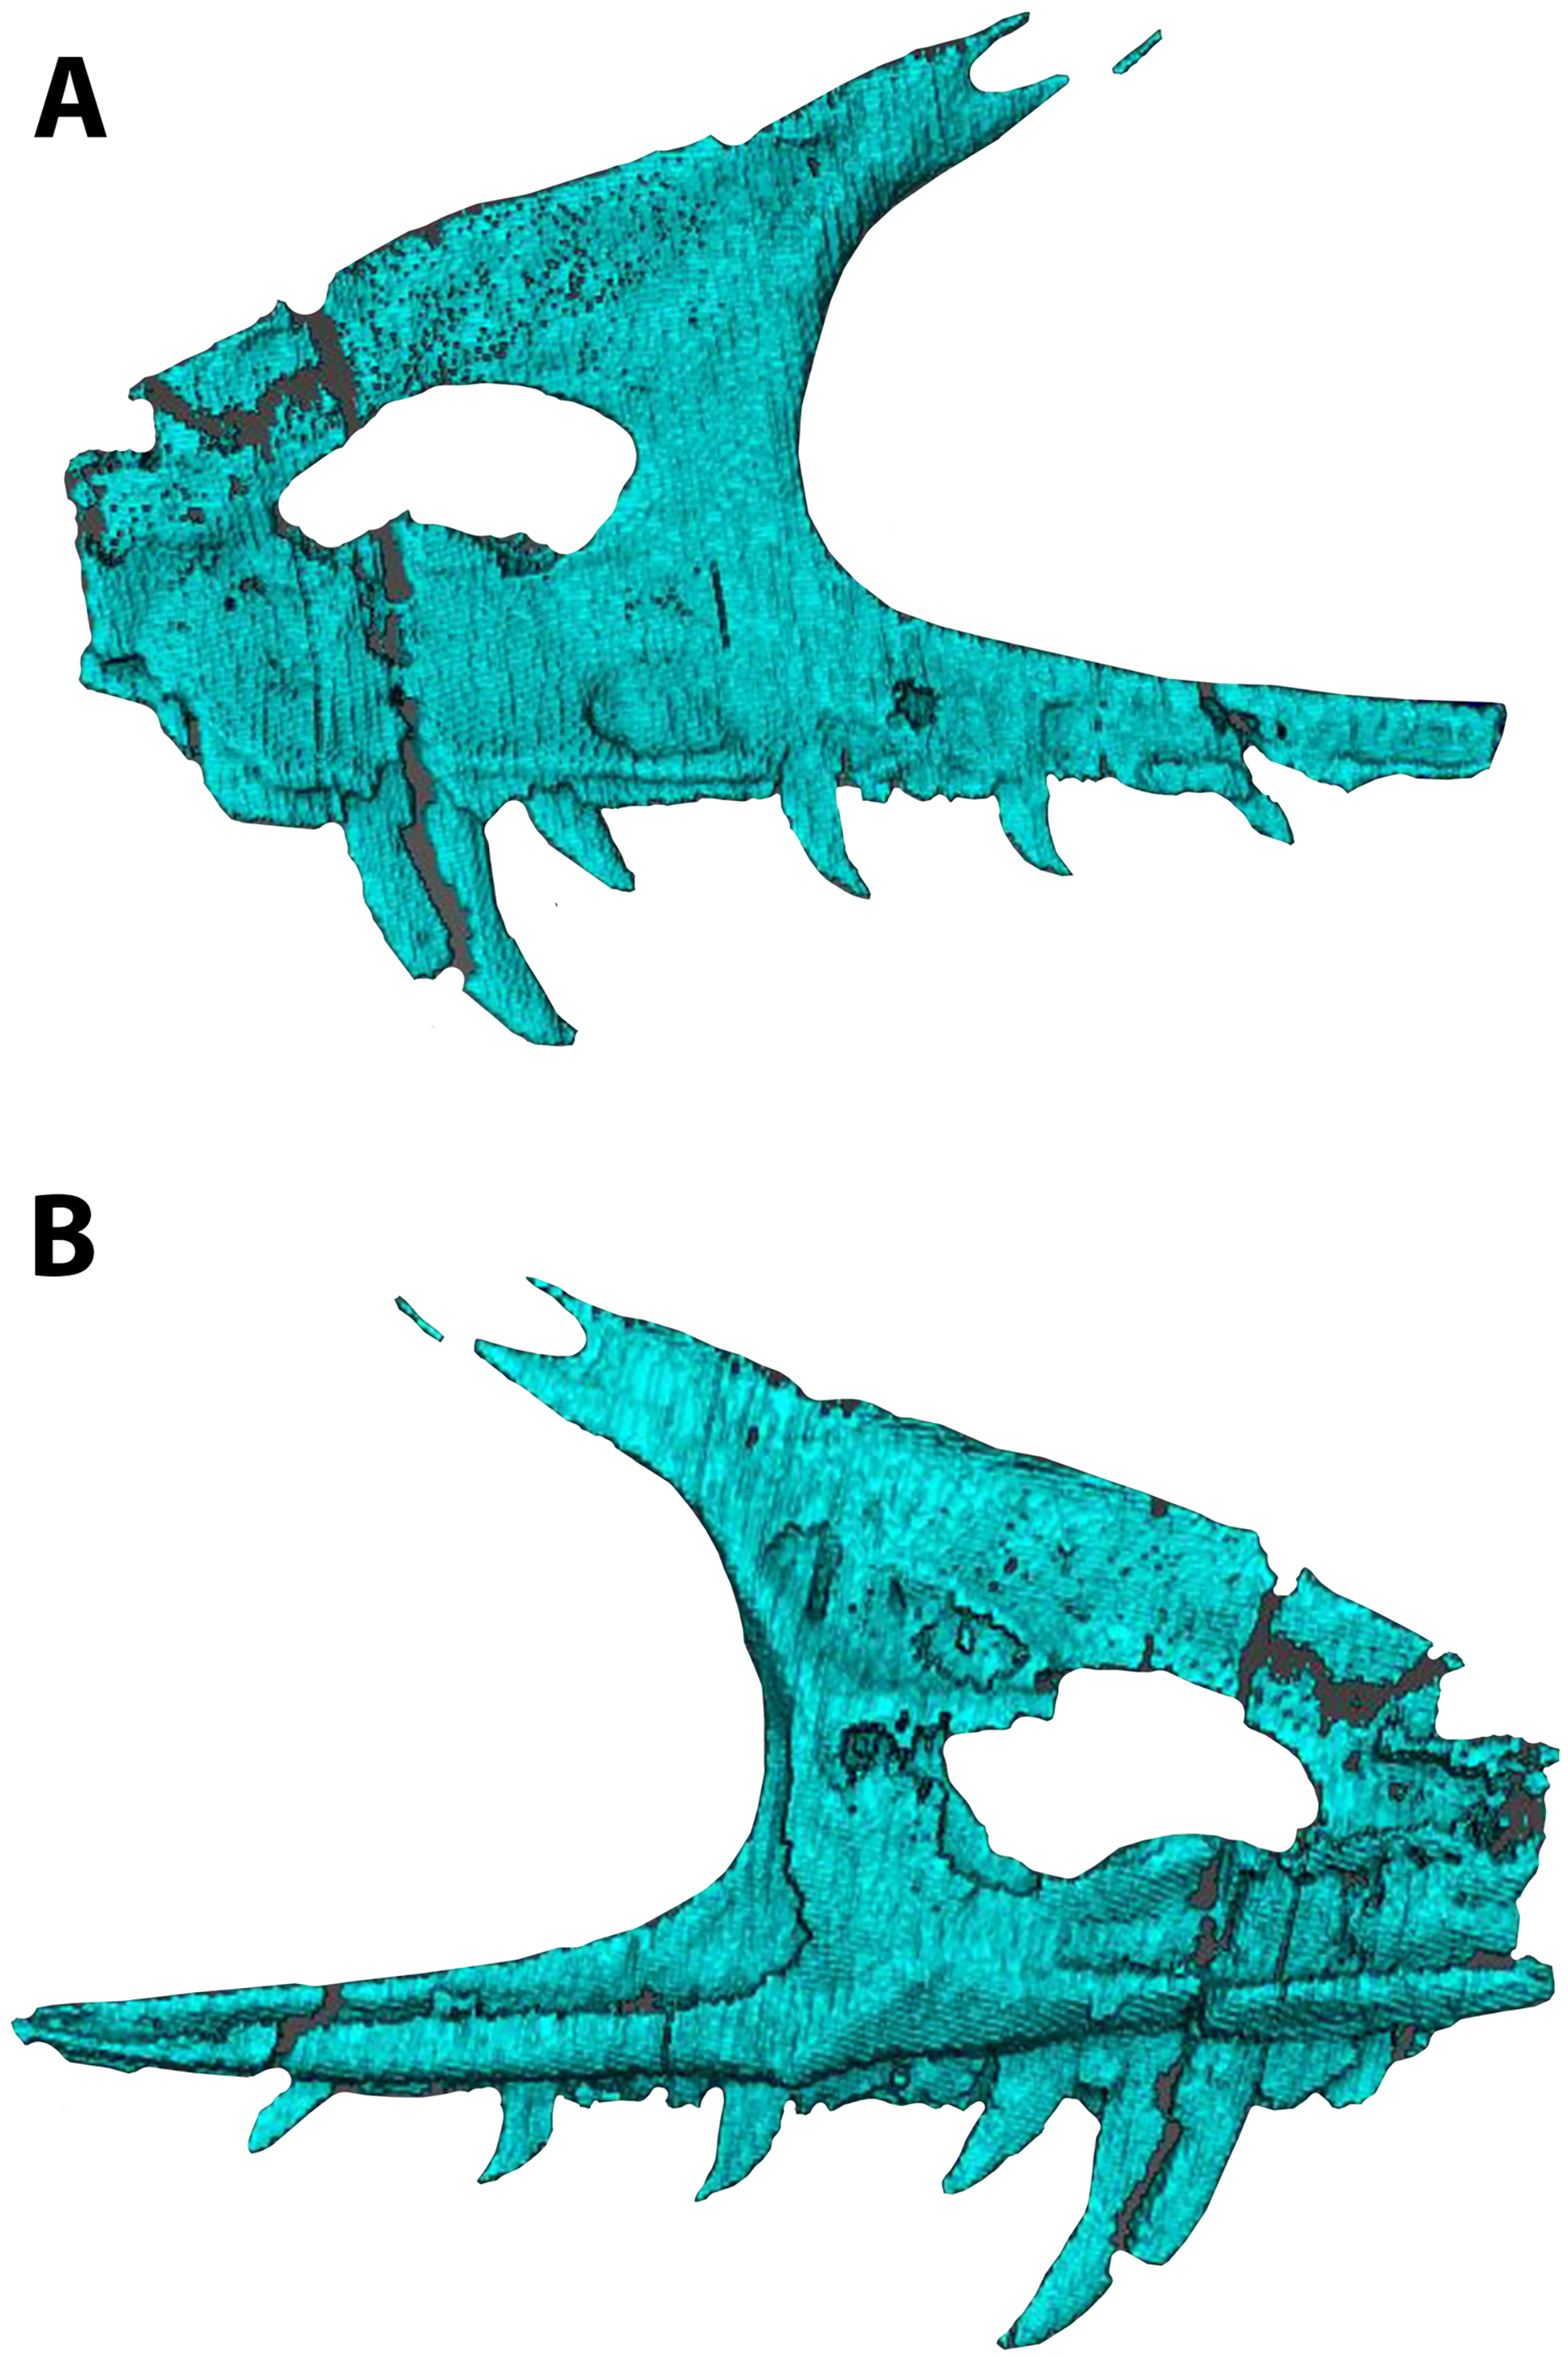 A new paravian dinosaur from the Late Jurassic of North